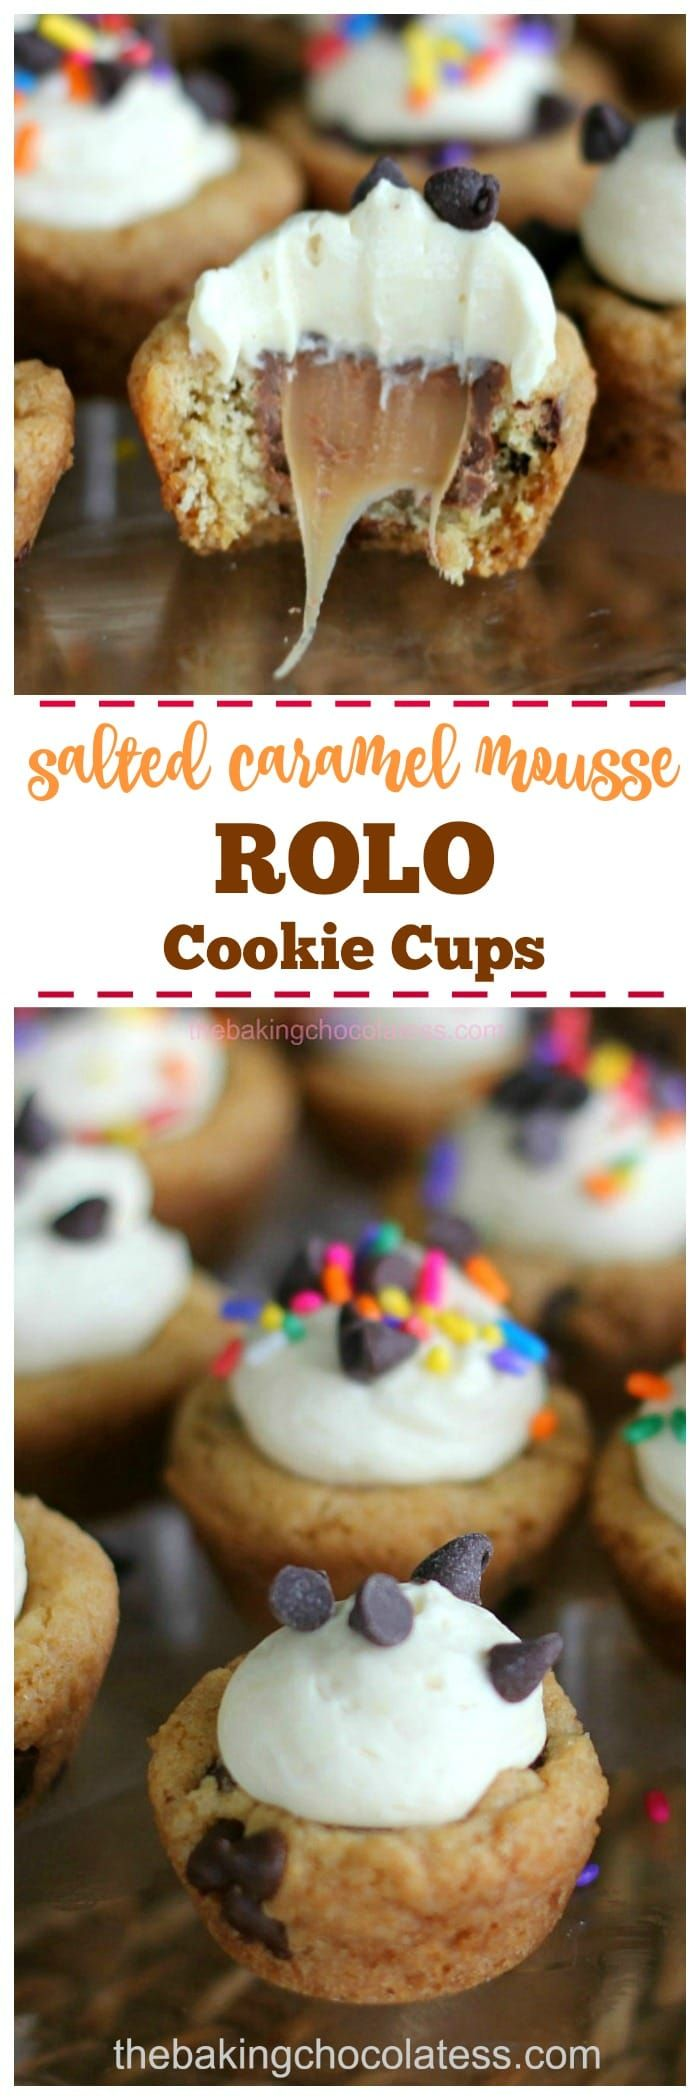 Salted Caramel Mousse ROLO Cookie Cups - Who could resist these little gooey cookie cups loaded with mini chocolate chips, ROLOs and a fluffy caramel mousse filling? Not I!